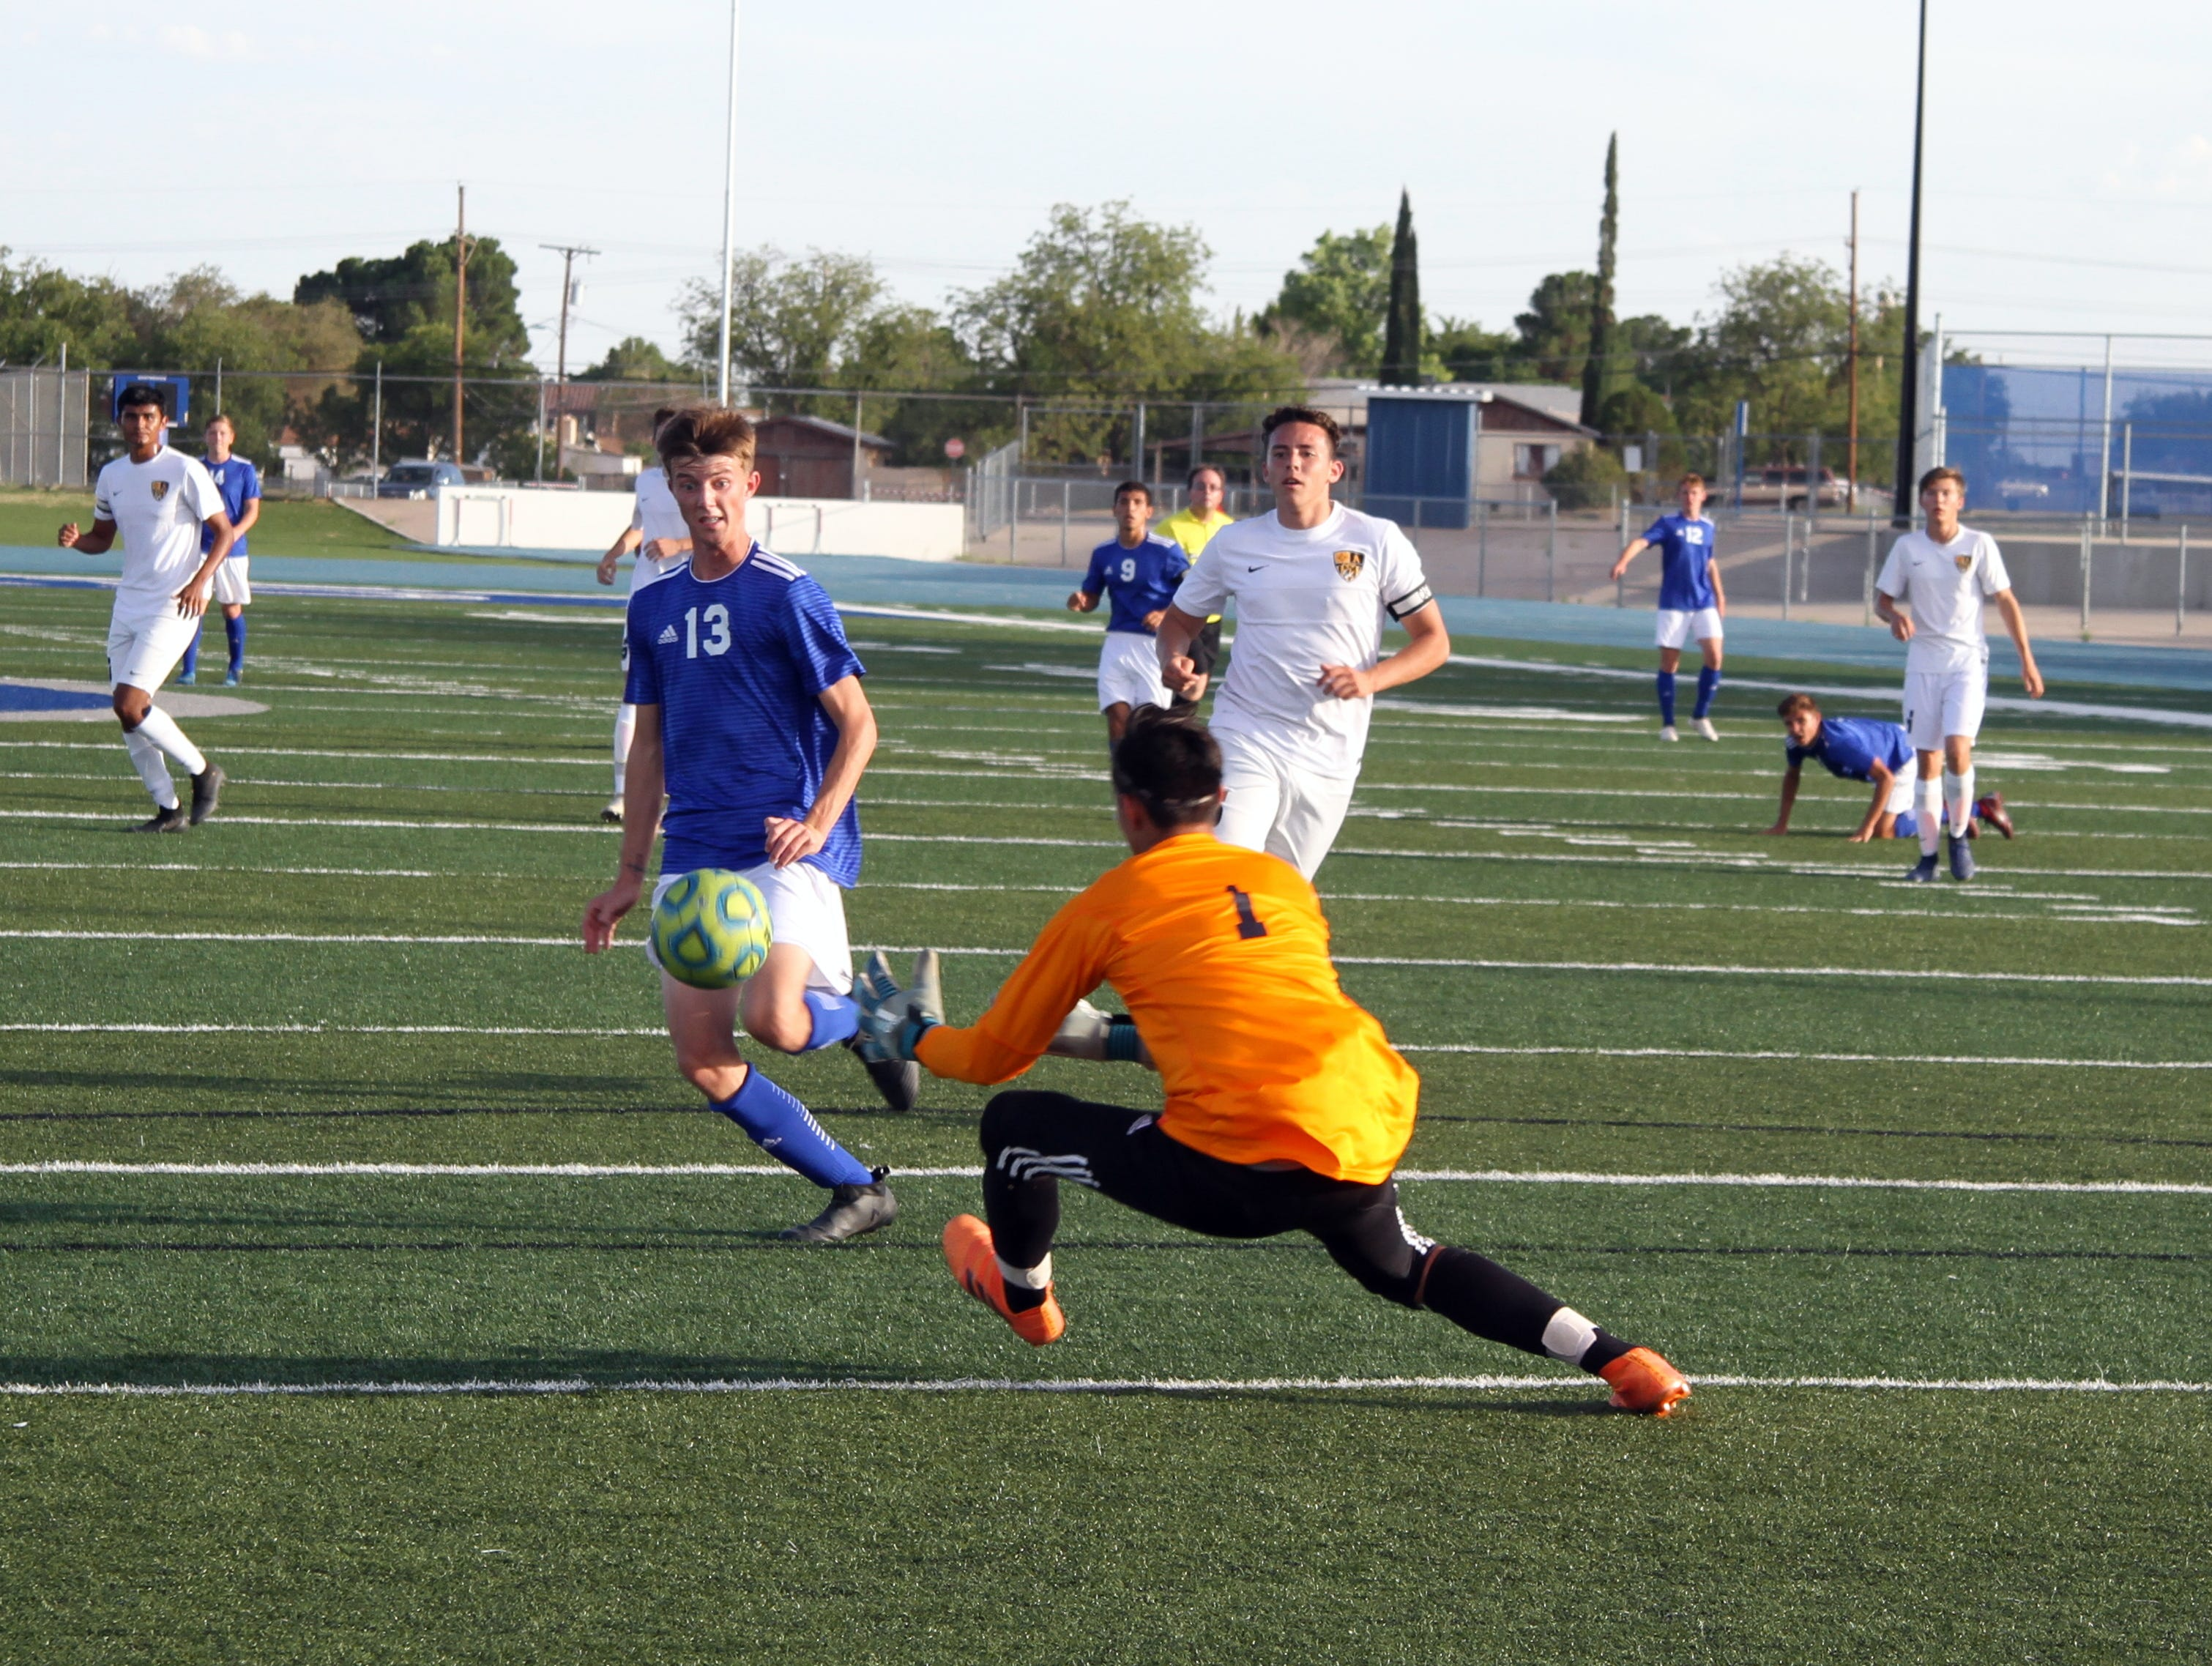 Alamogordo keeper Logan Reyes stops a shot attempt by Carlsbad's Austin Naylor in the first half of Tuesday's contest.